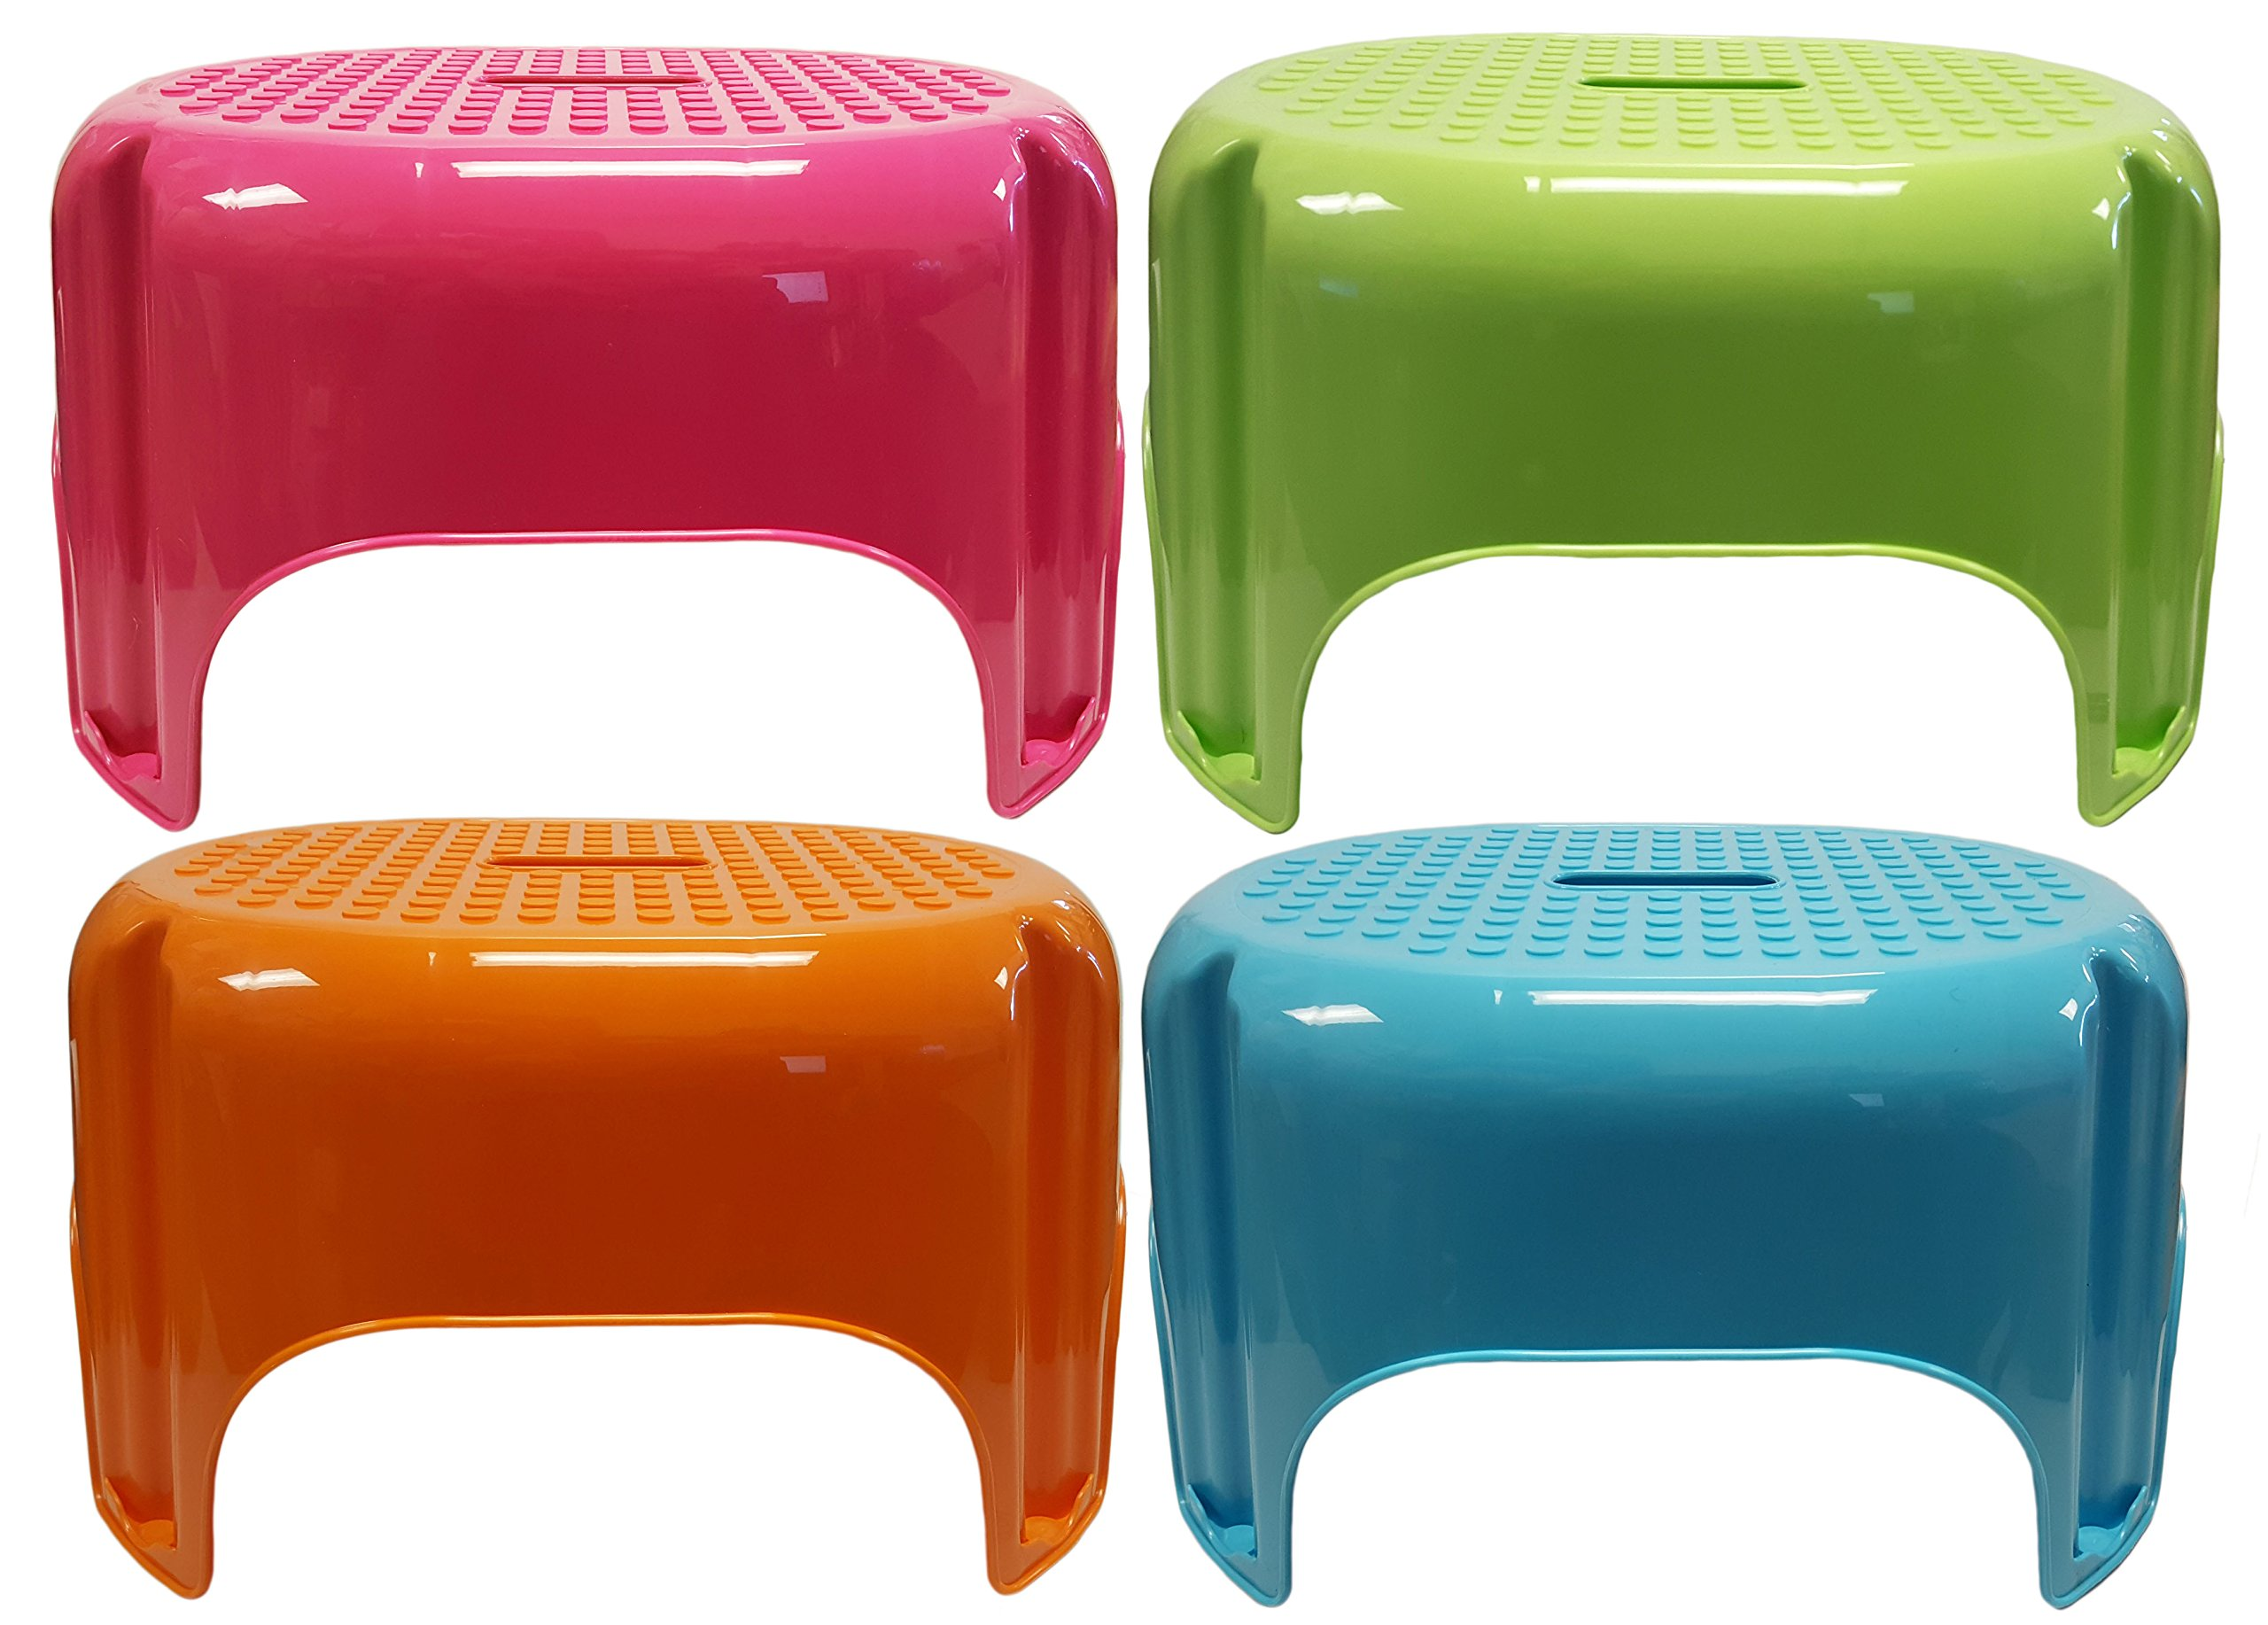 Set of 4 Large Black Duck Brand Step Stools - BPA FREE - 9.5''x17'' - 4 Bright Beautiful Colors - Top Quality (Pink, Blue, Green, Orange)